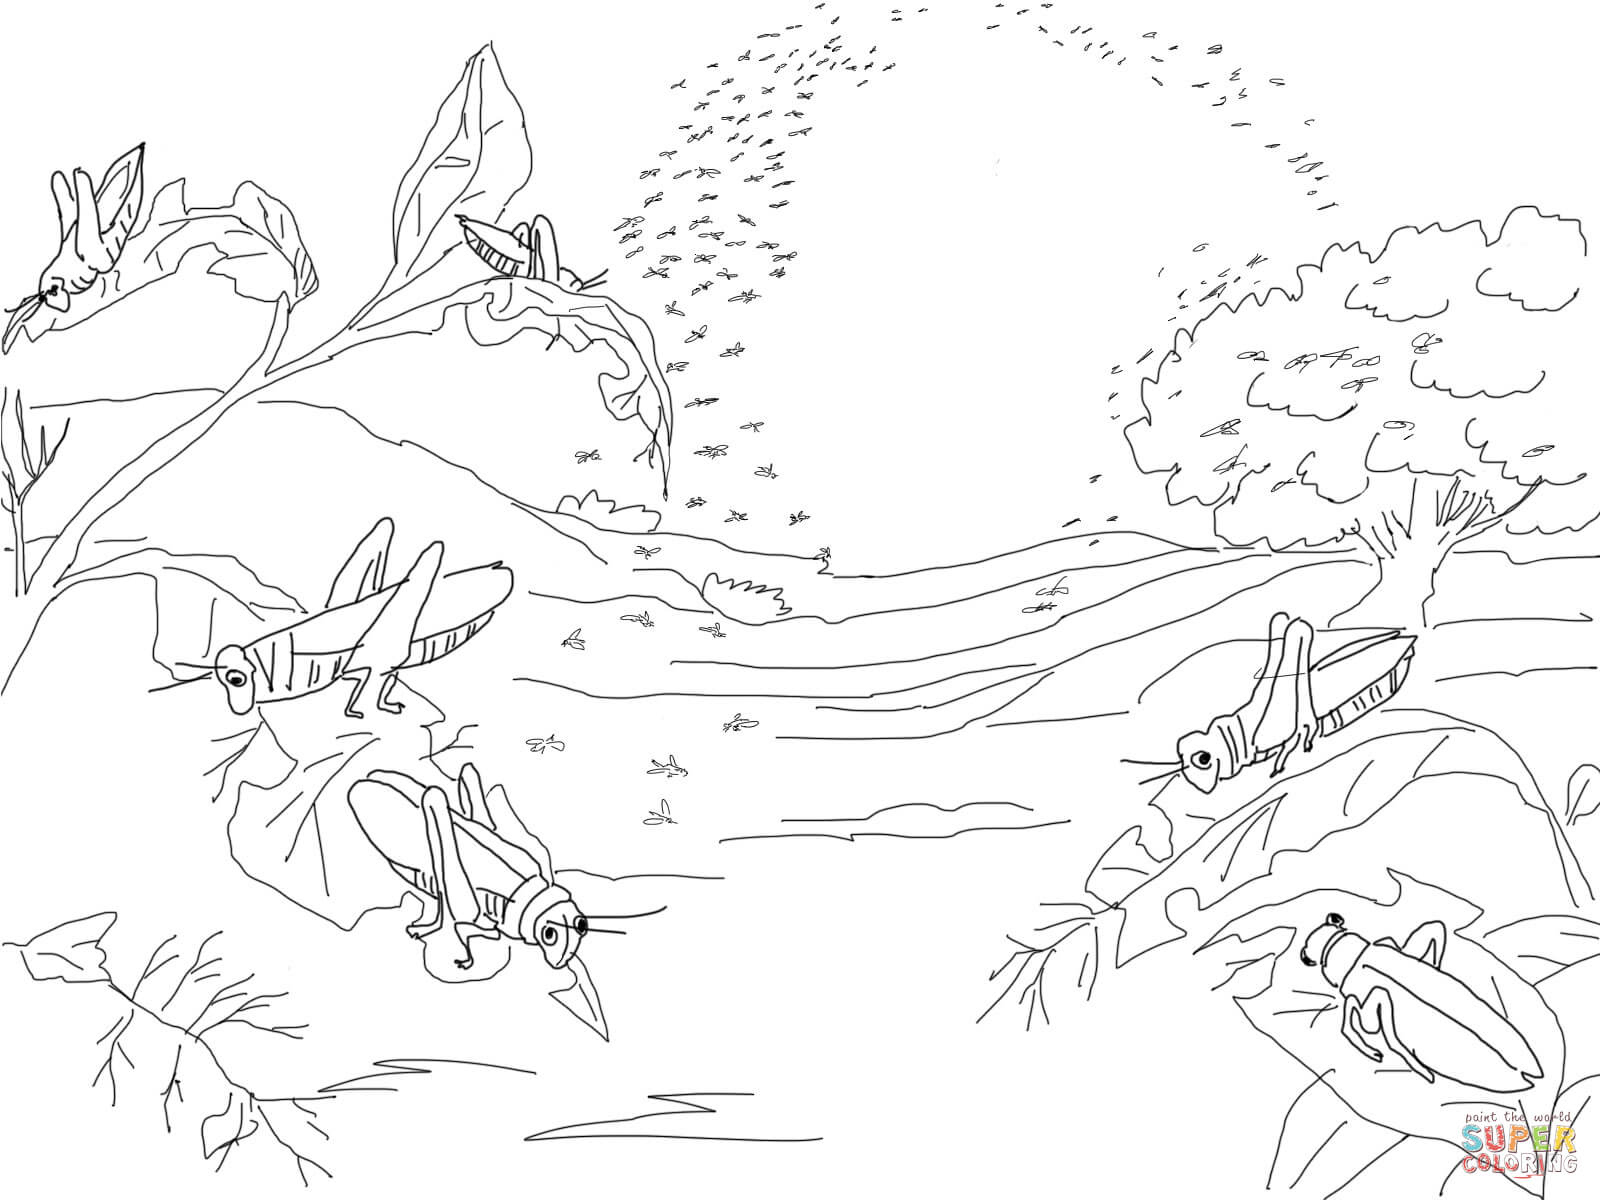 plague of frogs coloring page moses plague plagues of egypt frog coloring pages of coloring frogs plague page